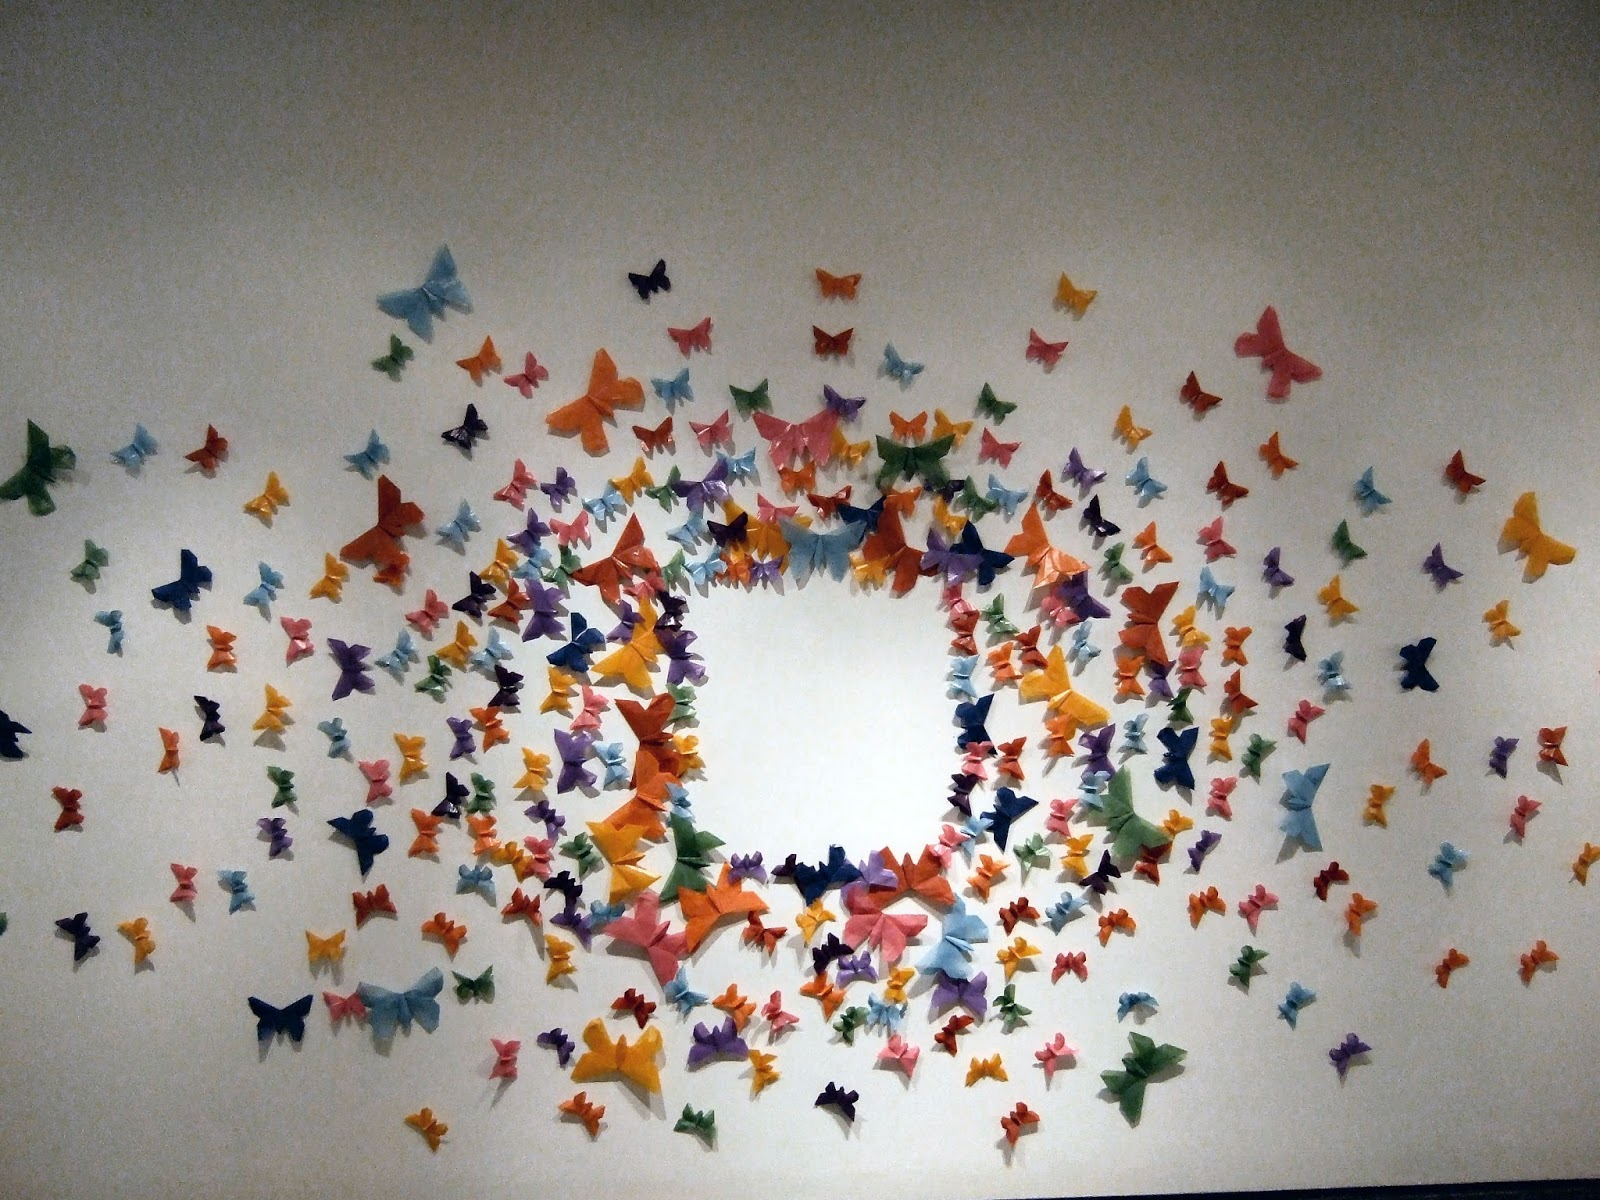 One Is Simplistic And The Other Very Complicated Sculpture Represents History Progression Of Origami Tradition Butterfly Wall Art